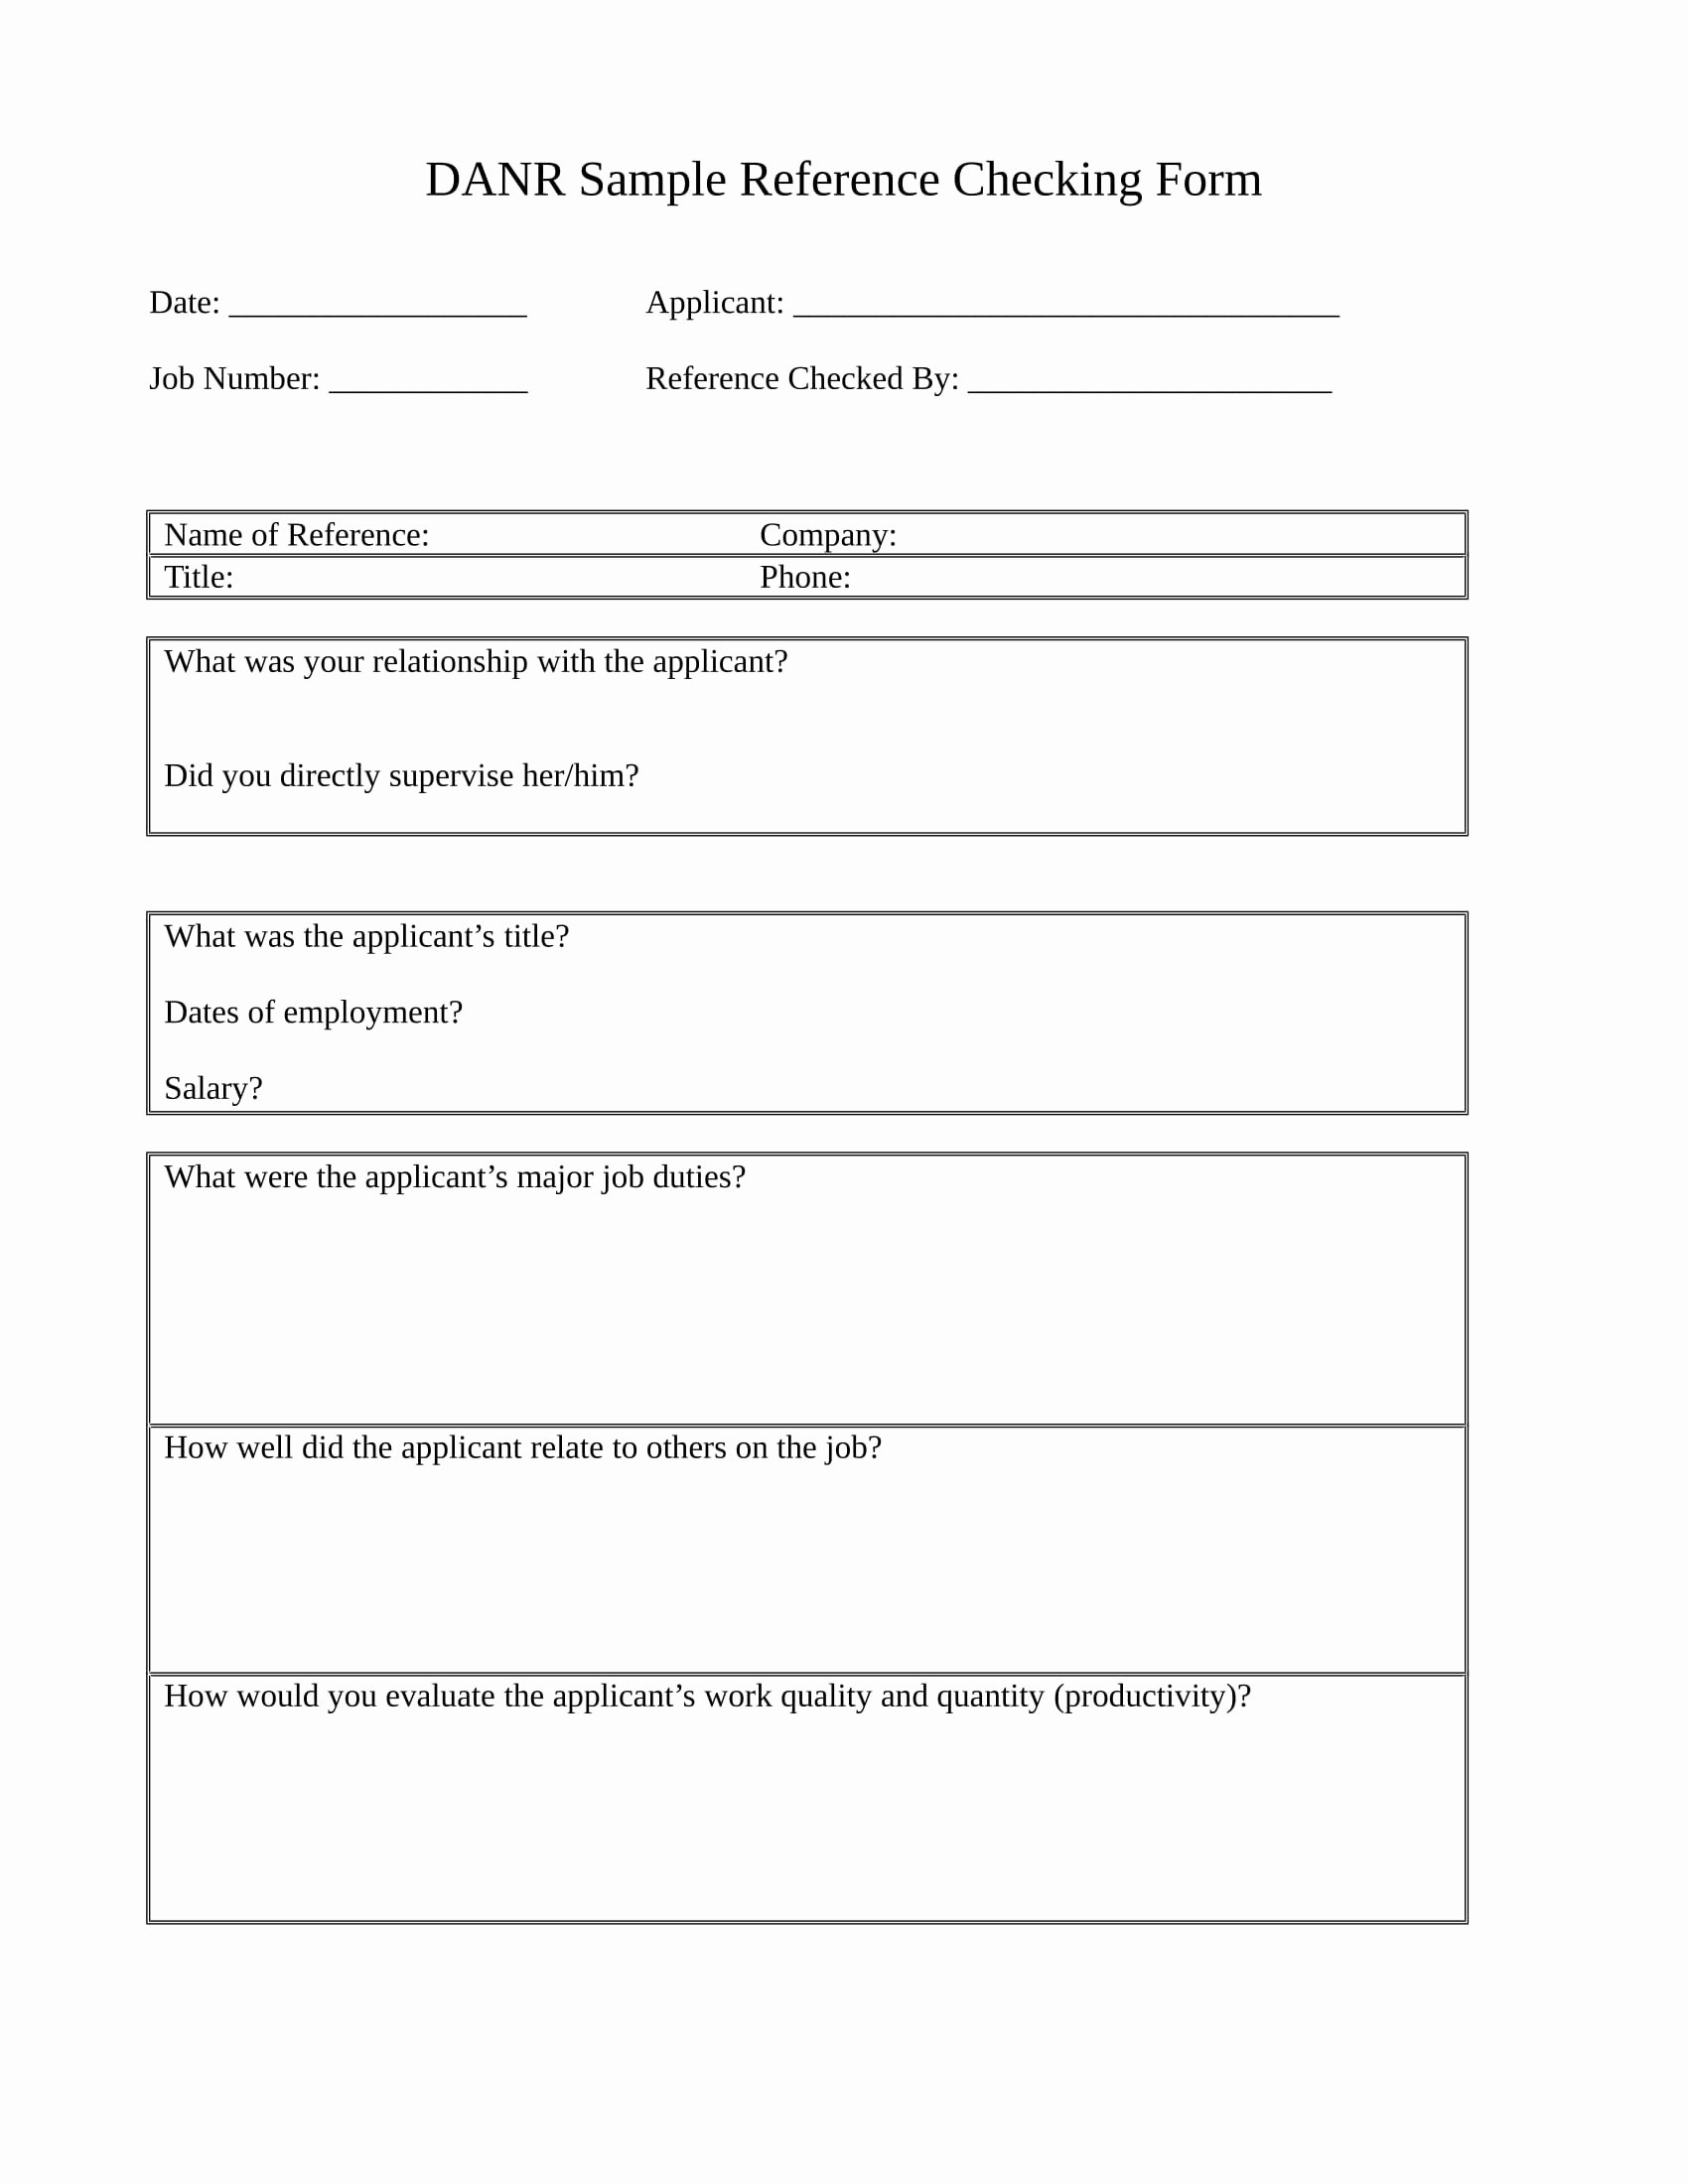 Reference Check form Template Fresh 11 Reference Checking forms & Templates Pdf Doc